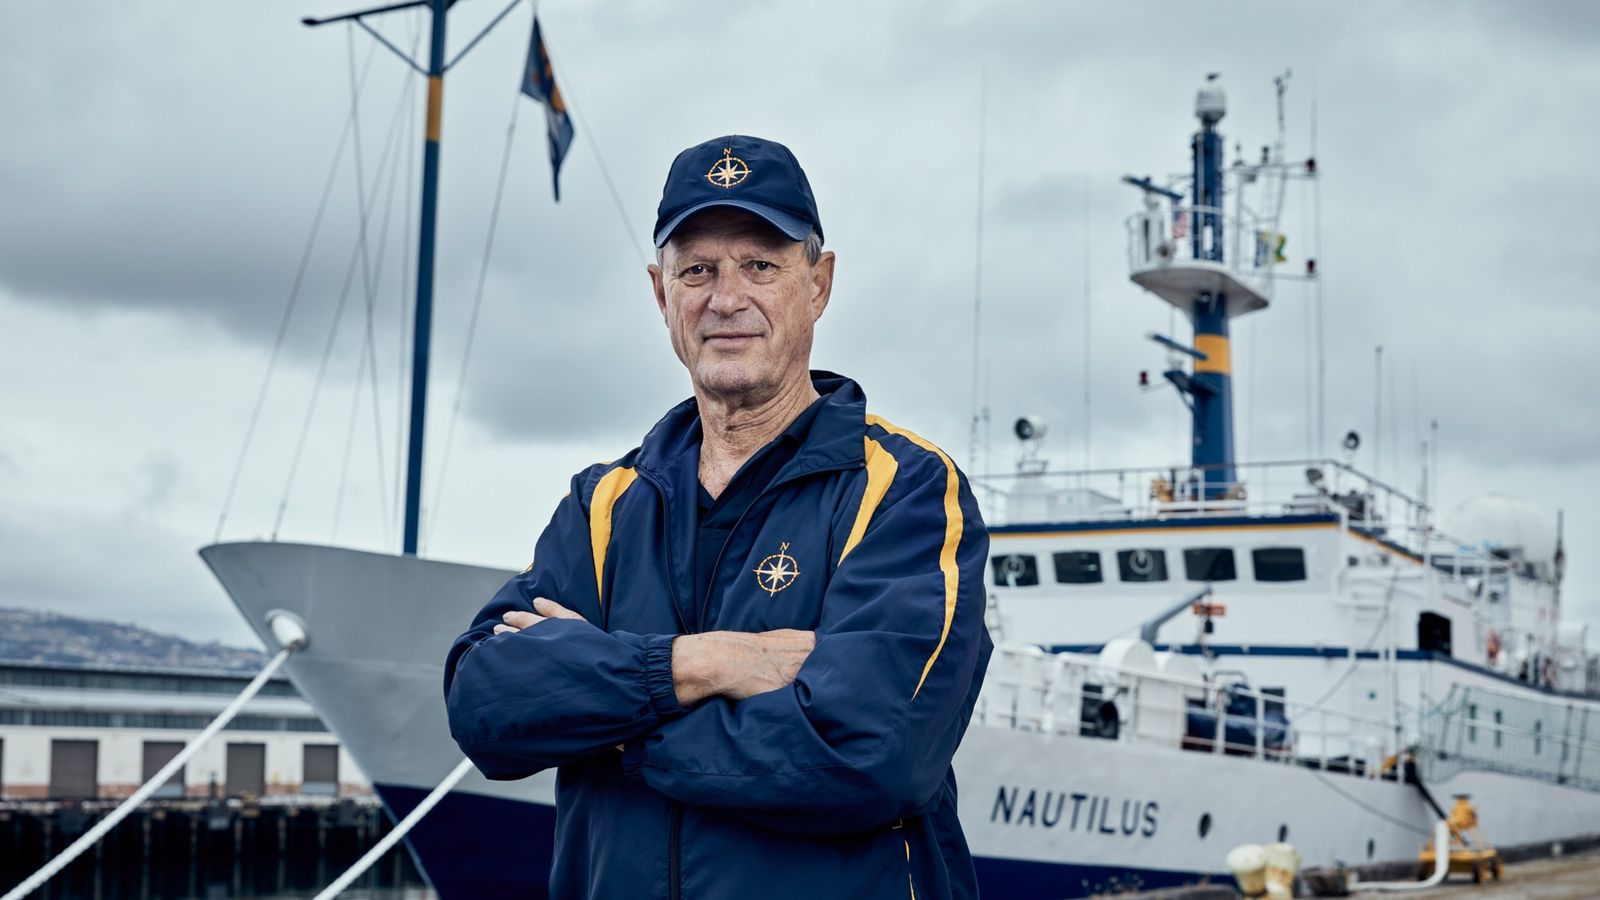 Best known for his 1985 discovery of the Titanic, Robert Ballard will bring his proven undersea ...